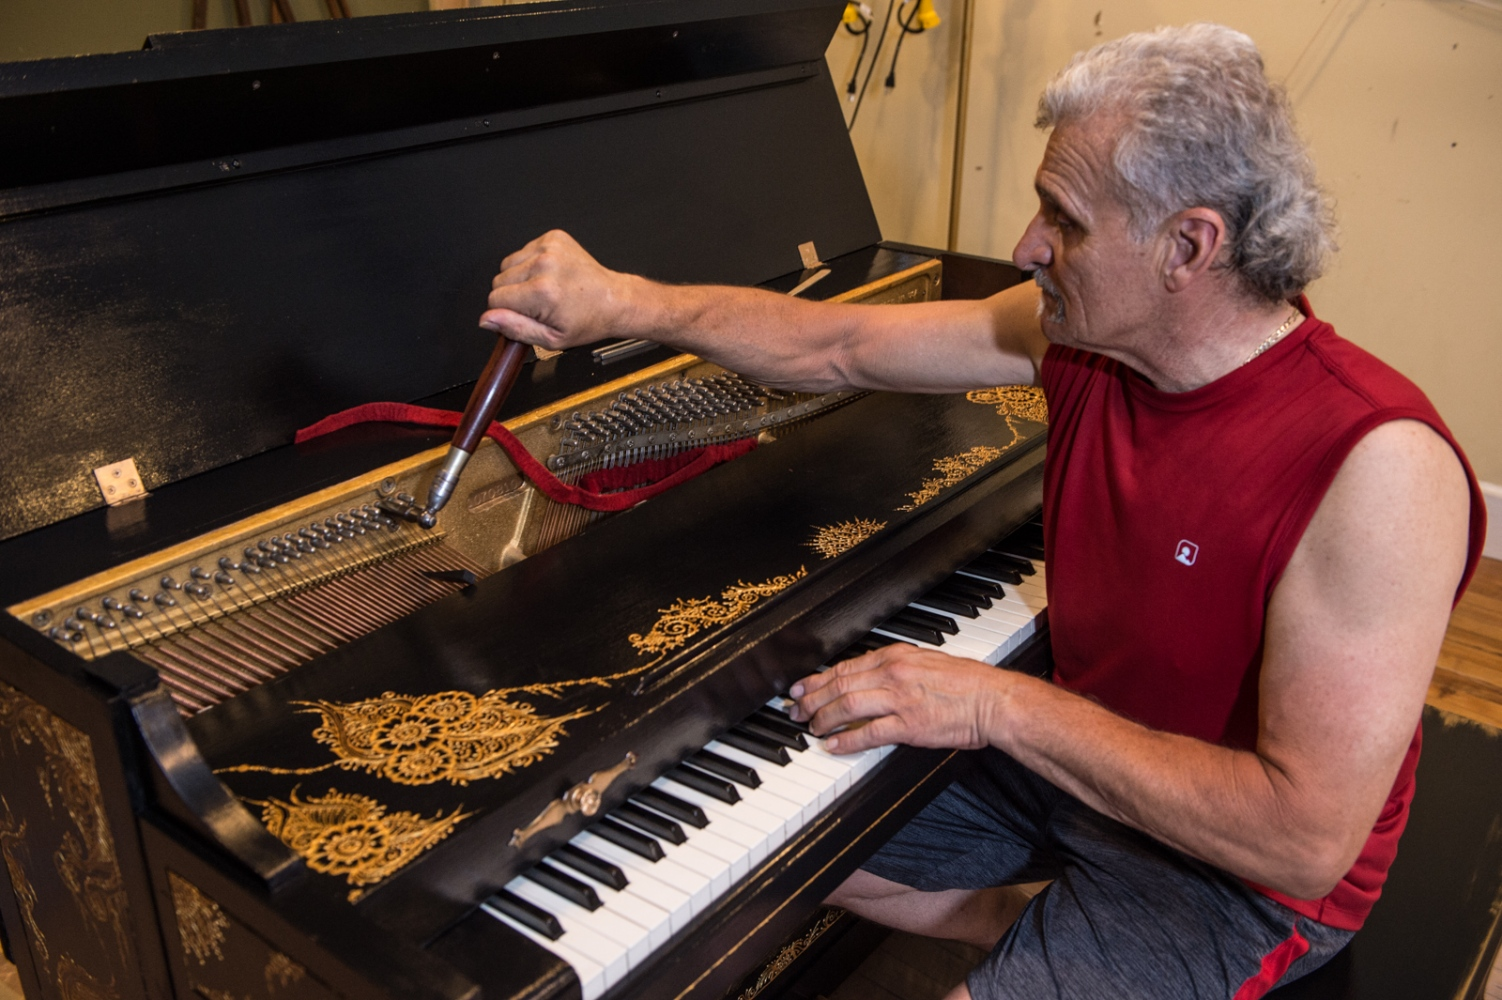 Joe Cacheiro was the piano tech who gave his time to get every piano playable. Joe tunes each piano using nothing but a tuning fork, tuning wrench and a tongue depressor.